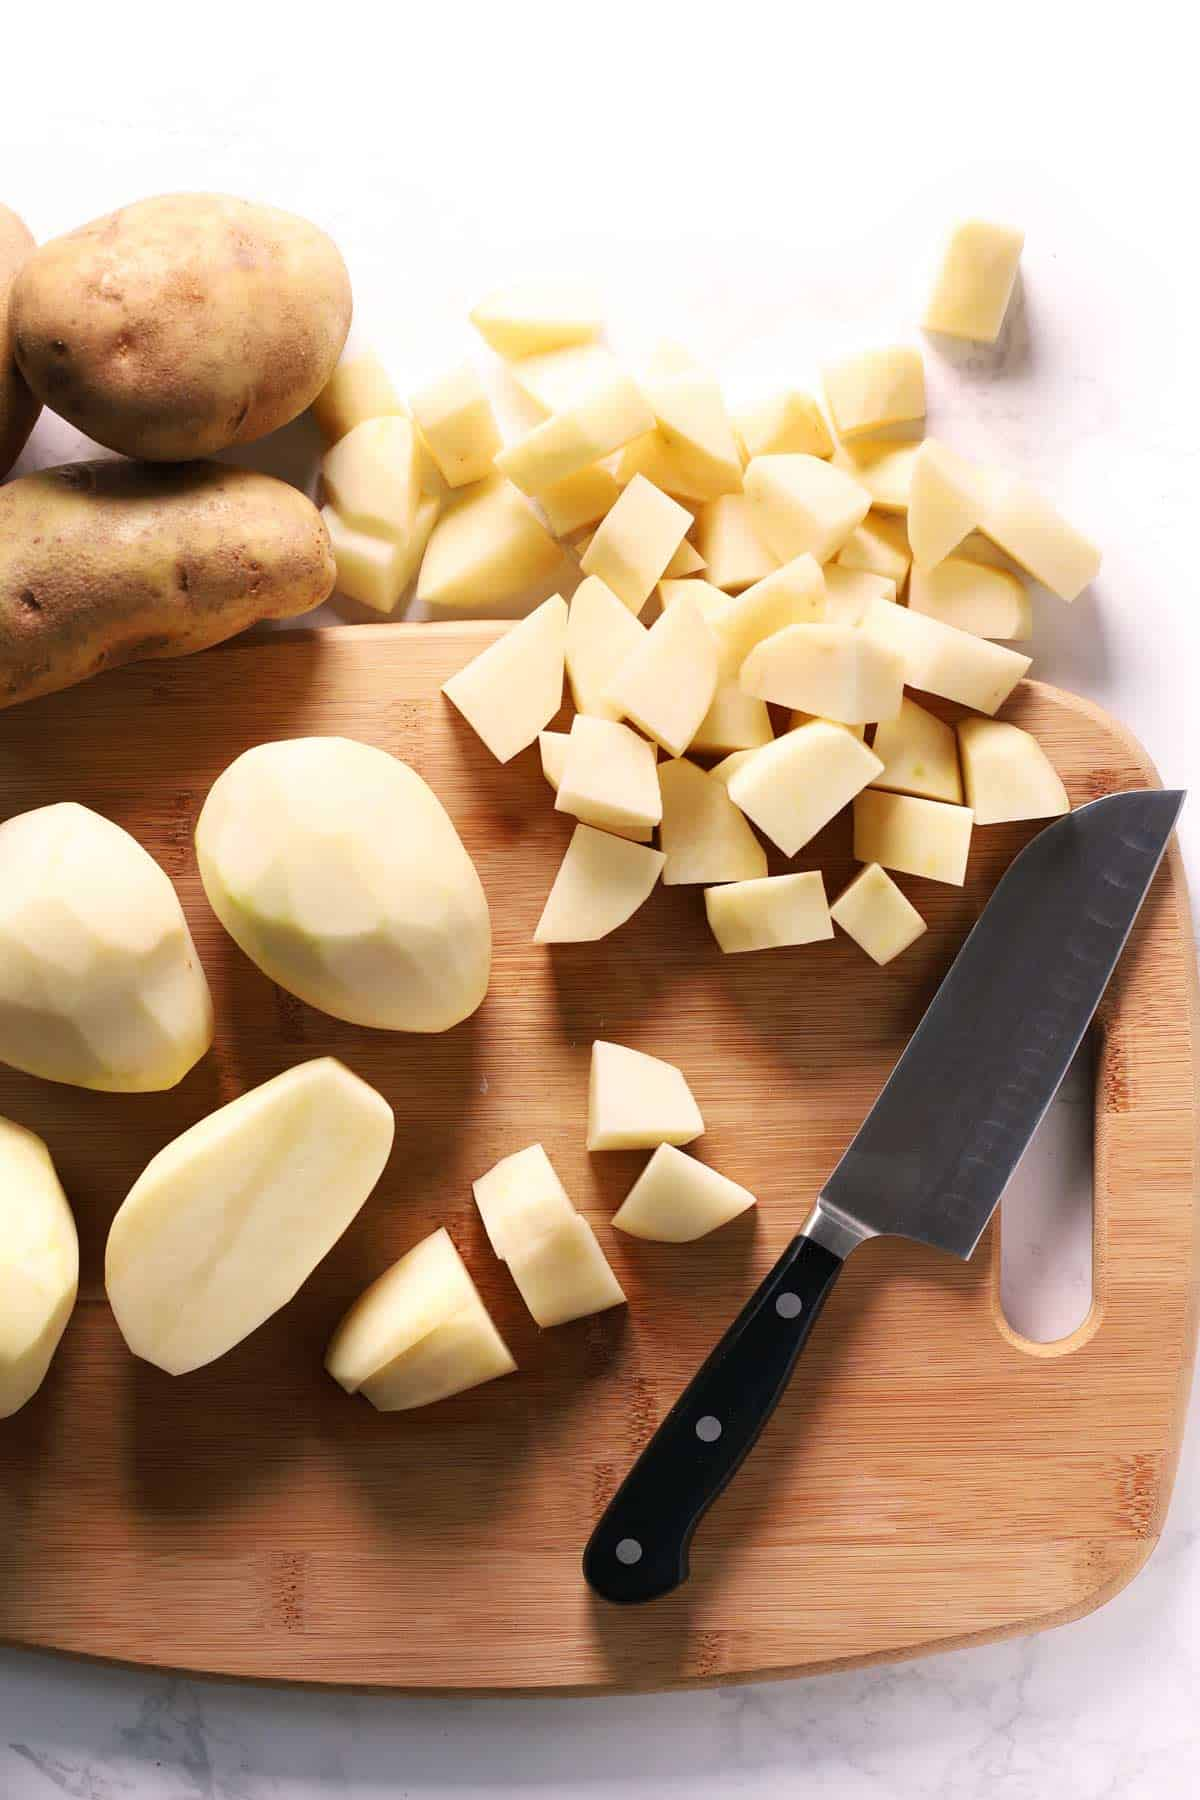 Peeled and cubed russet potatoes on cutting board with knife.